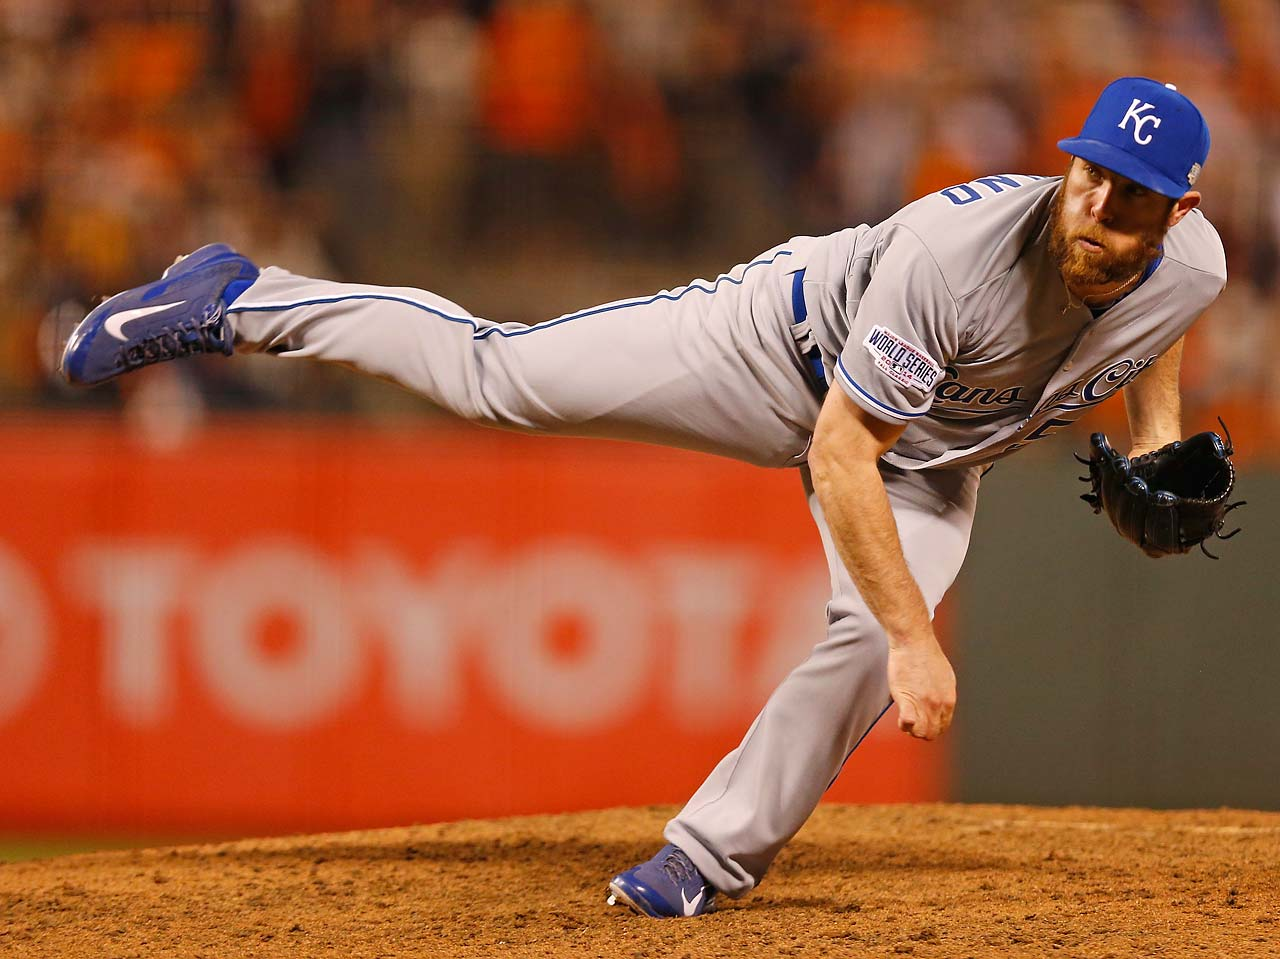 The Kansas City Royals relied on their bullpen to take a two games to one lead in the World Series, with Greg Holland closing the door in the ninth inning for his seventh save this postseason.